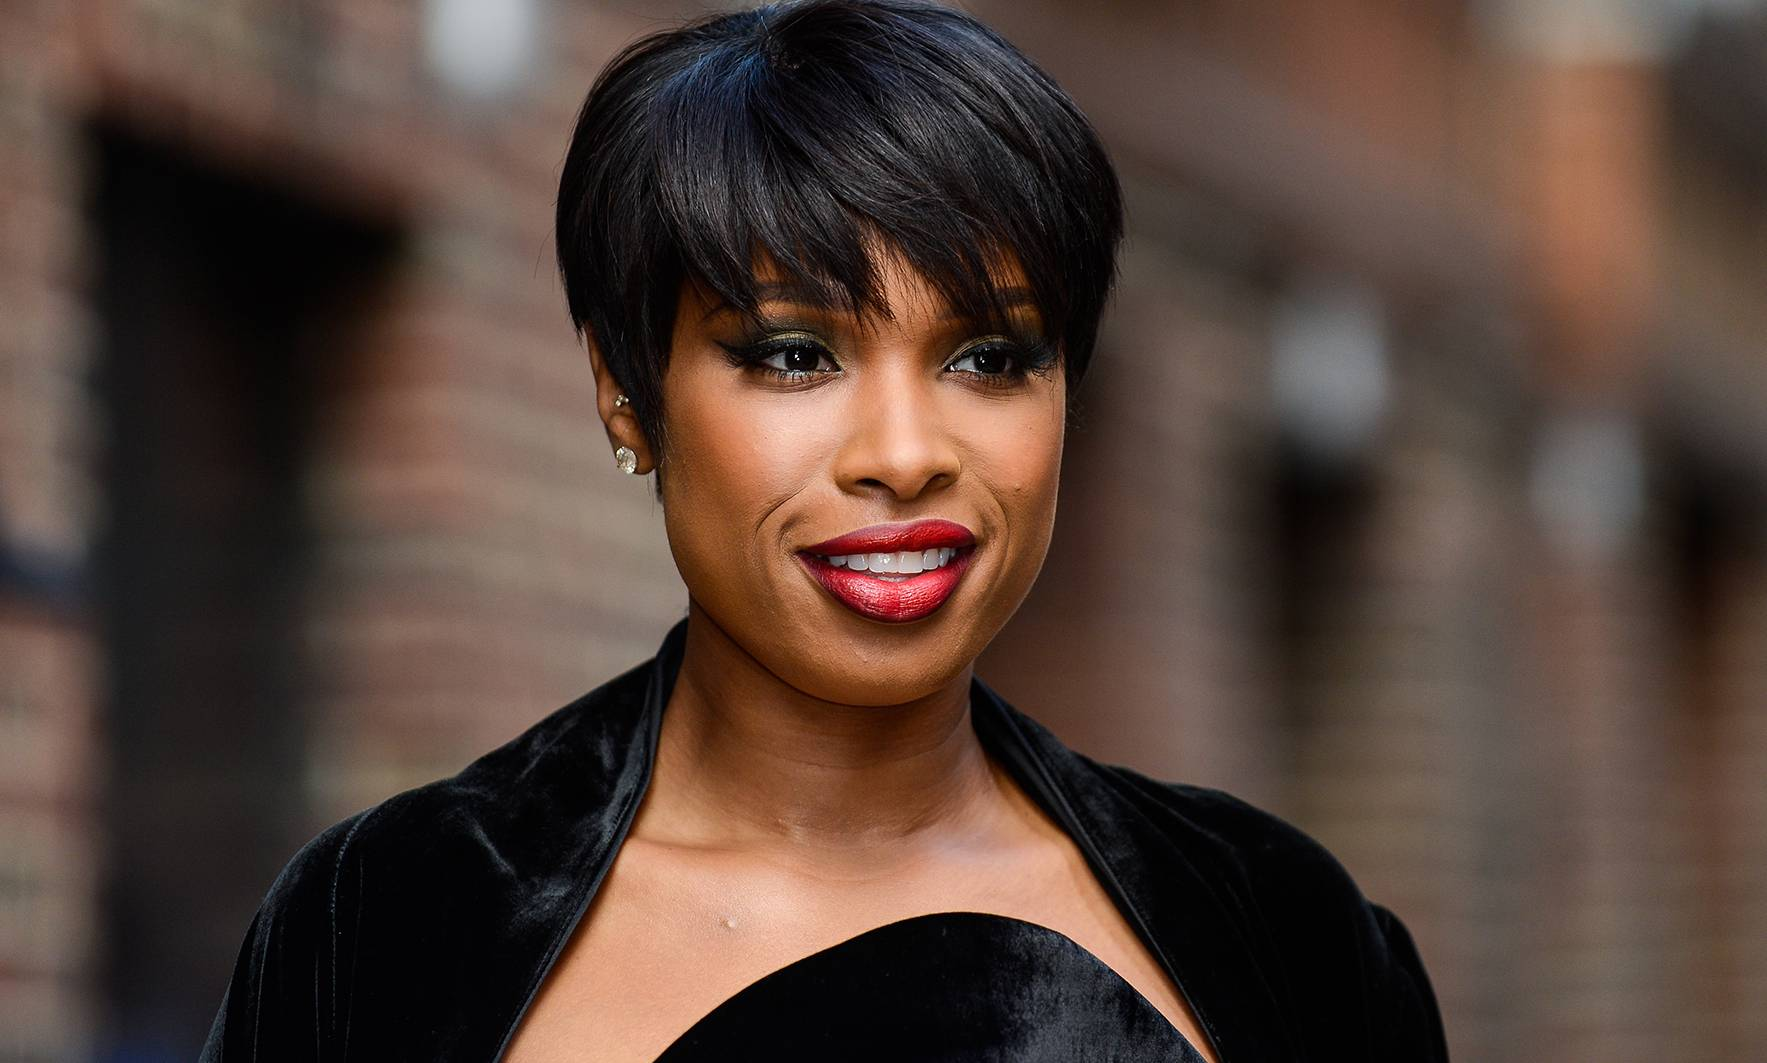 Albums by Jennifer Hudson